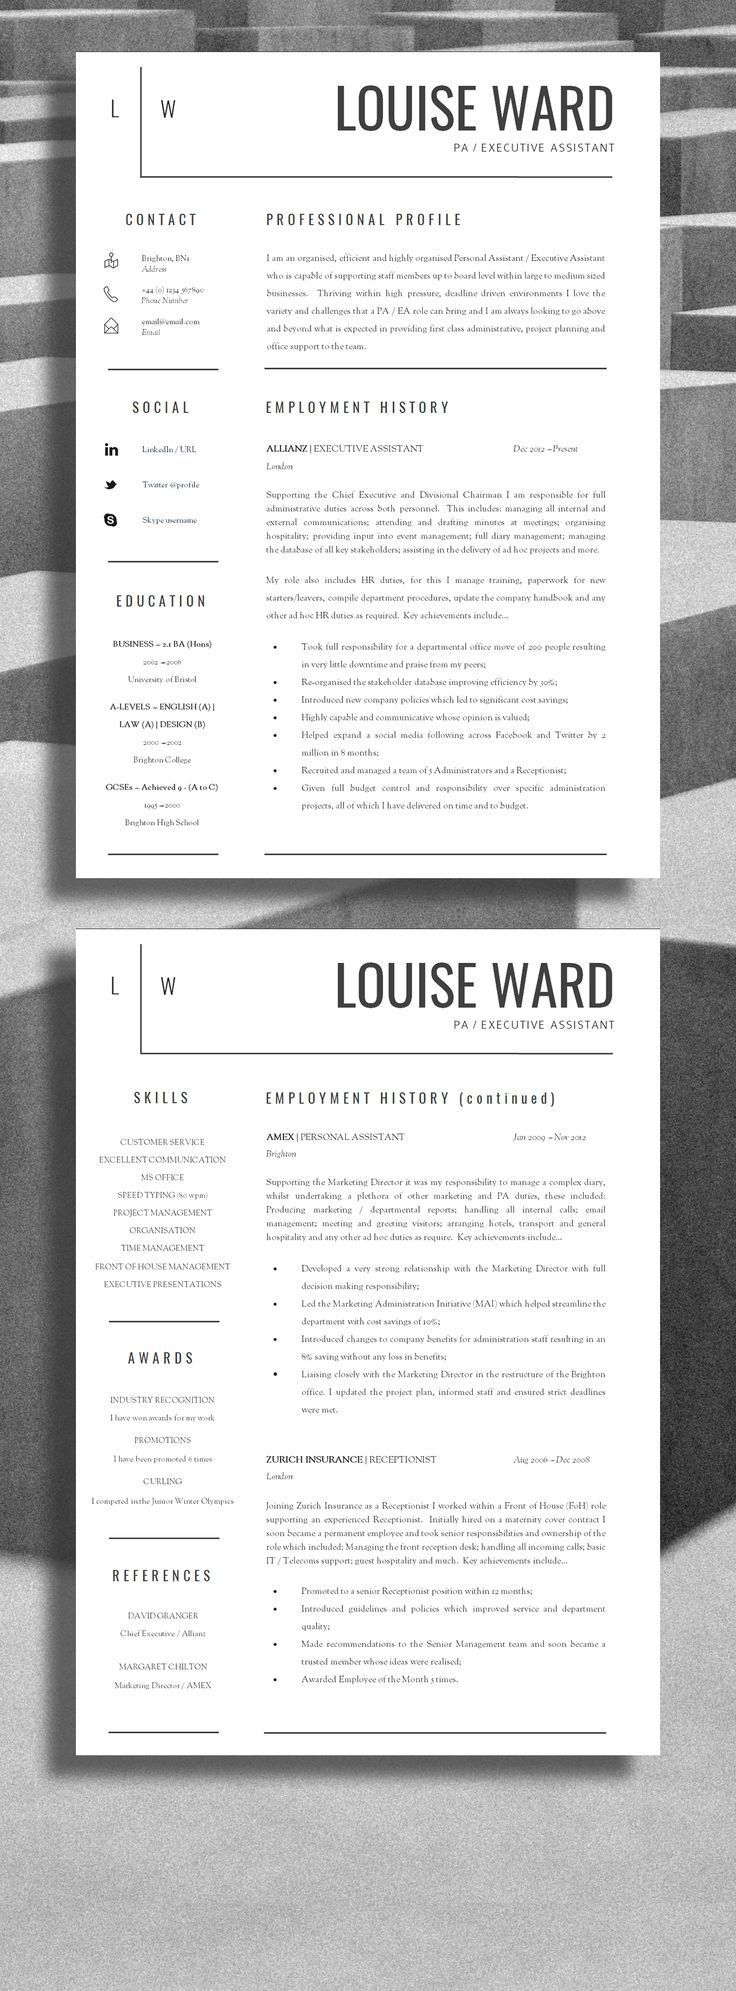 resume infographic resume infographic professional resume design